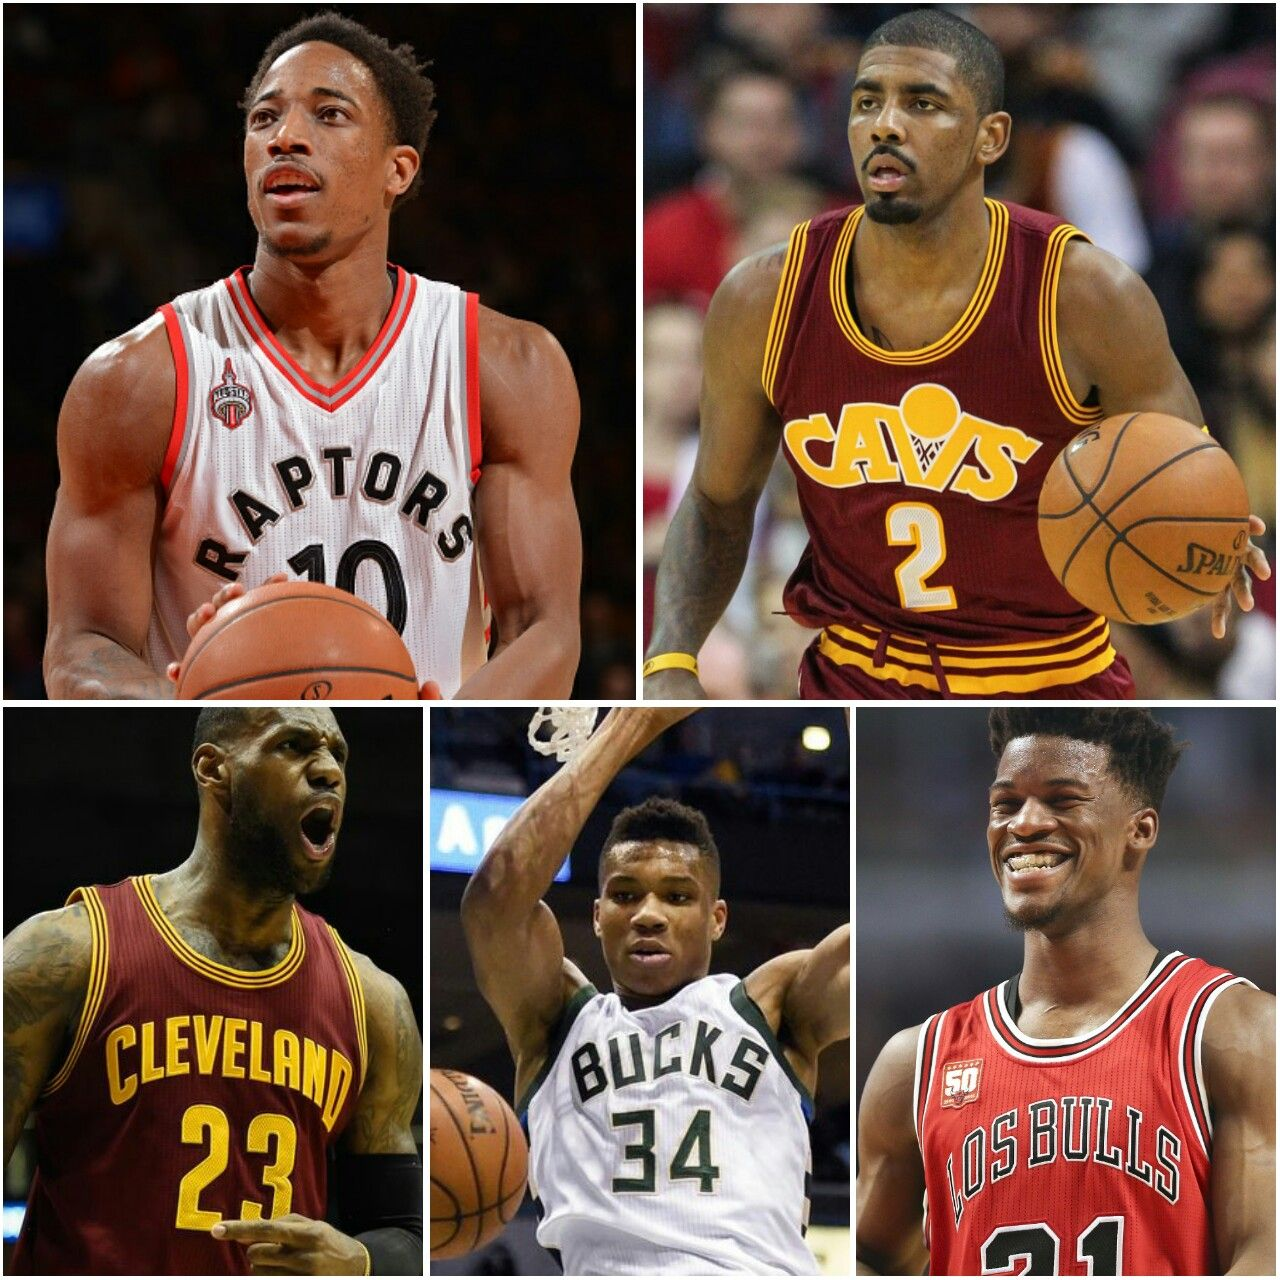 1a64d2c1eb9 2017 NBA All-Star Starting Five - Eastern Conference - Kyrie Irving (G), DeMar  DeRozan (G), Jimmy Butler (FC), Giannis Antetokounmpo (FC), & LeBron James  ...